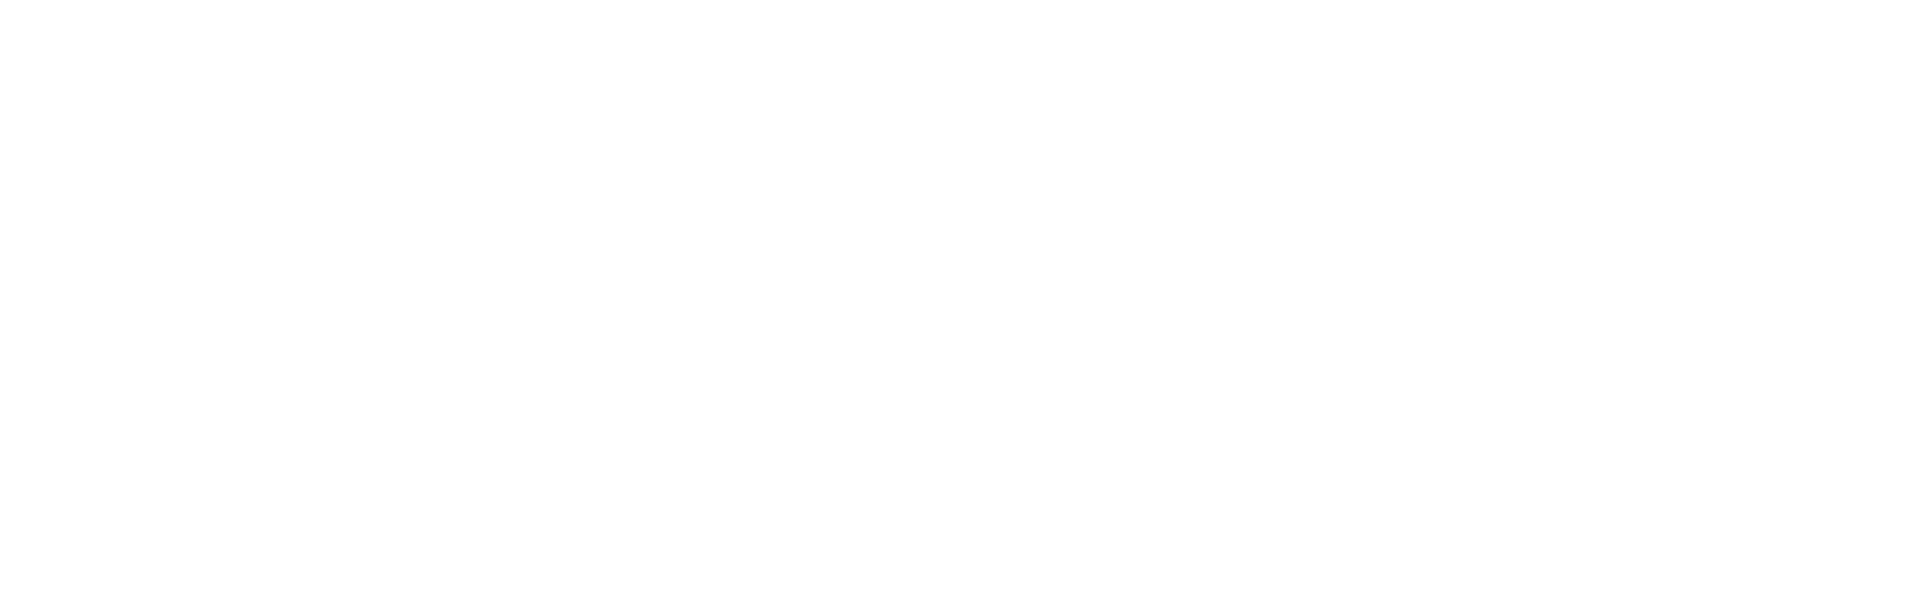 Professional Services Stove World Glasgow Professional Services Text